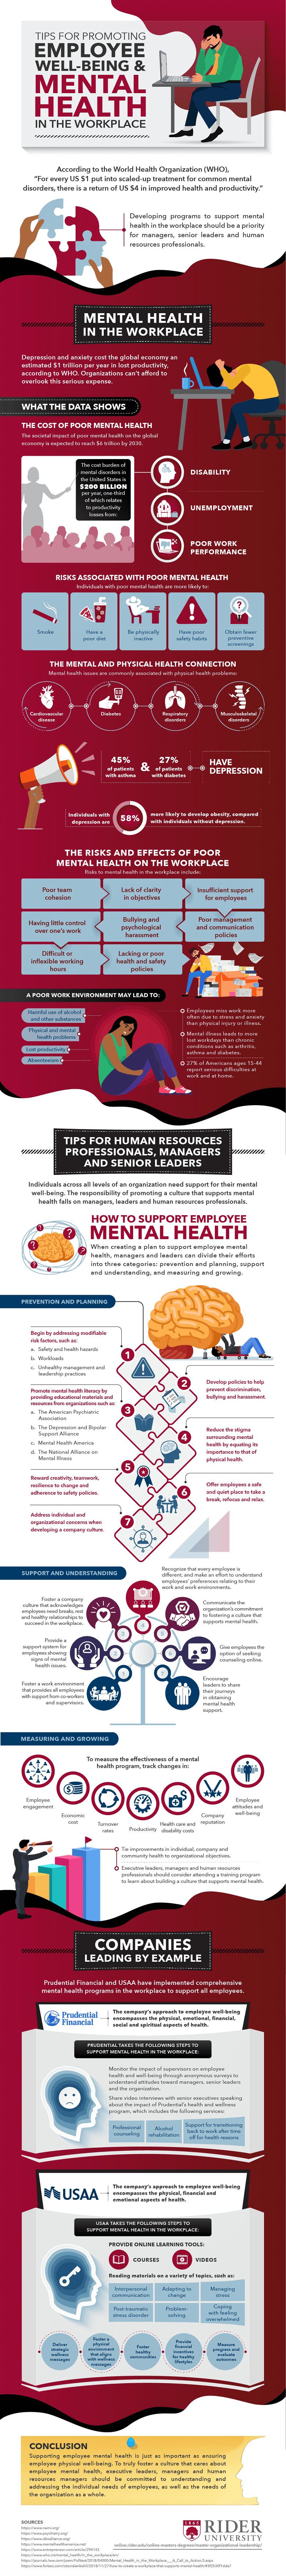 How employers can deploy various strategies to curb the negative impact of poor mental health at work.